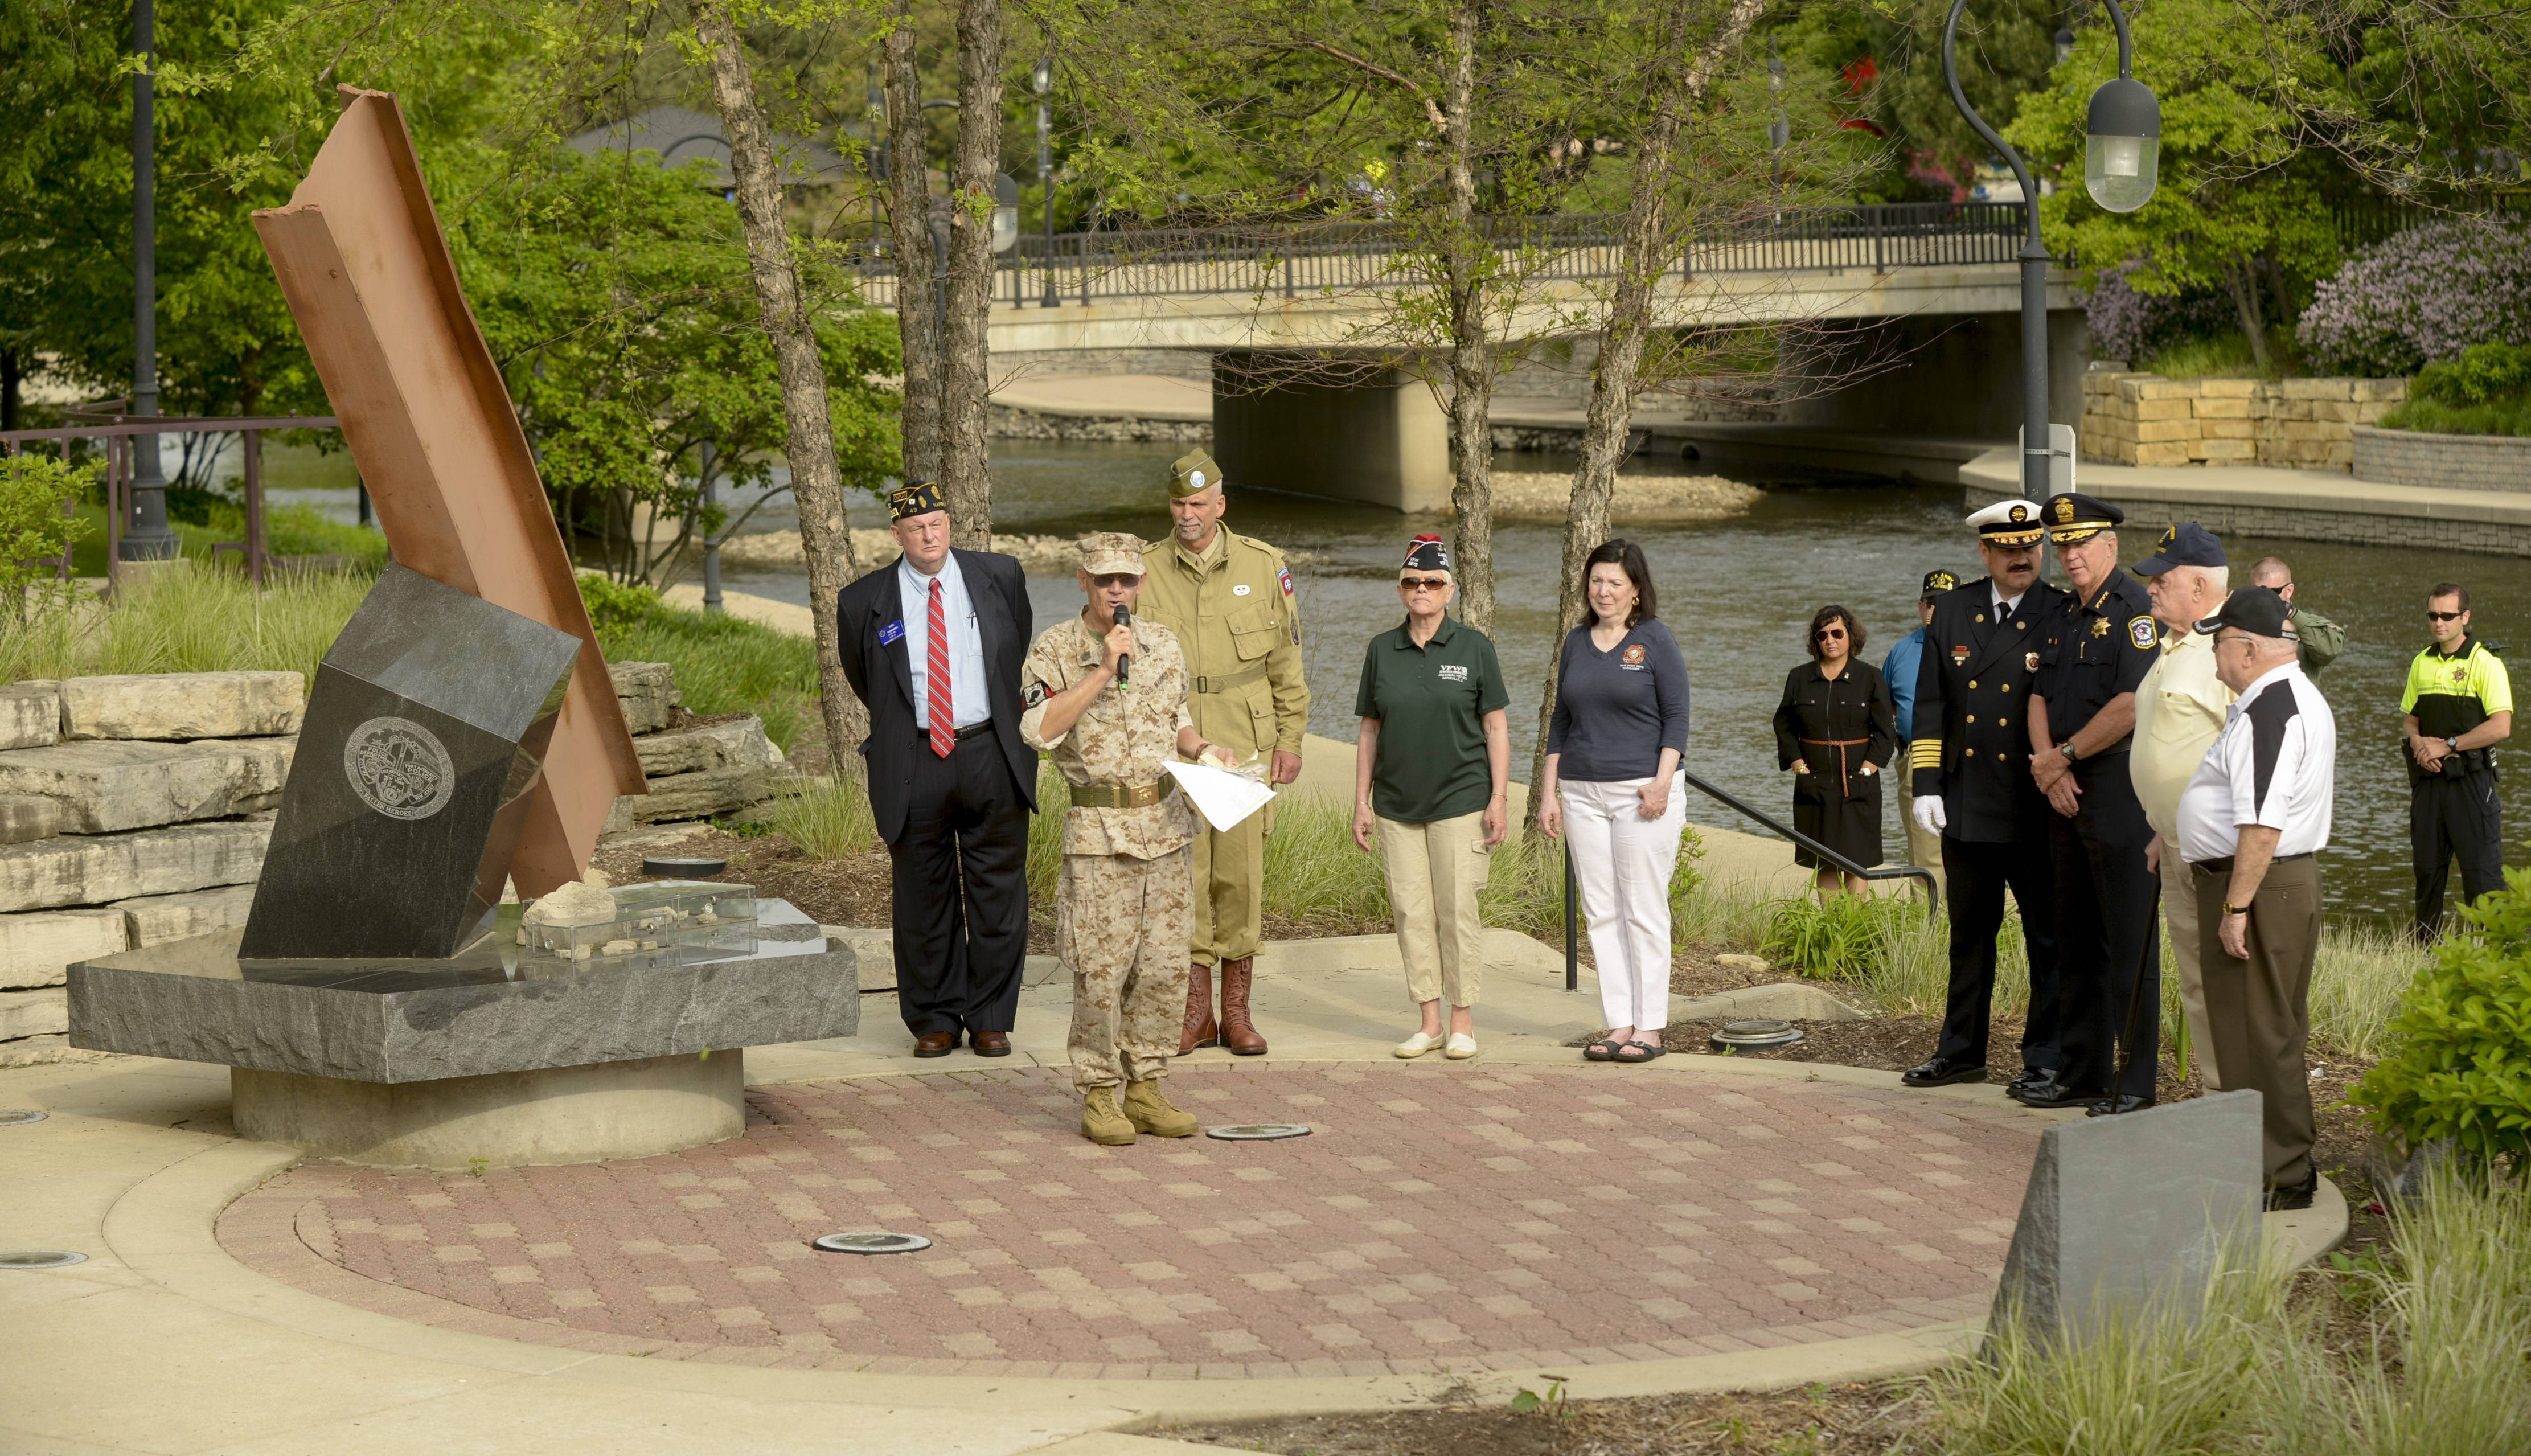 Naperville conducts a Memorial Day service at the Cmdr. Dan Shanower/Sept. 11 memorial, Monday.